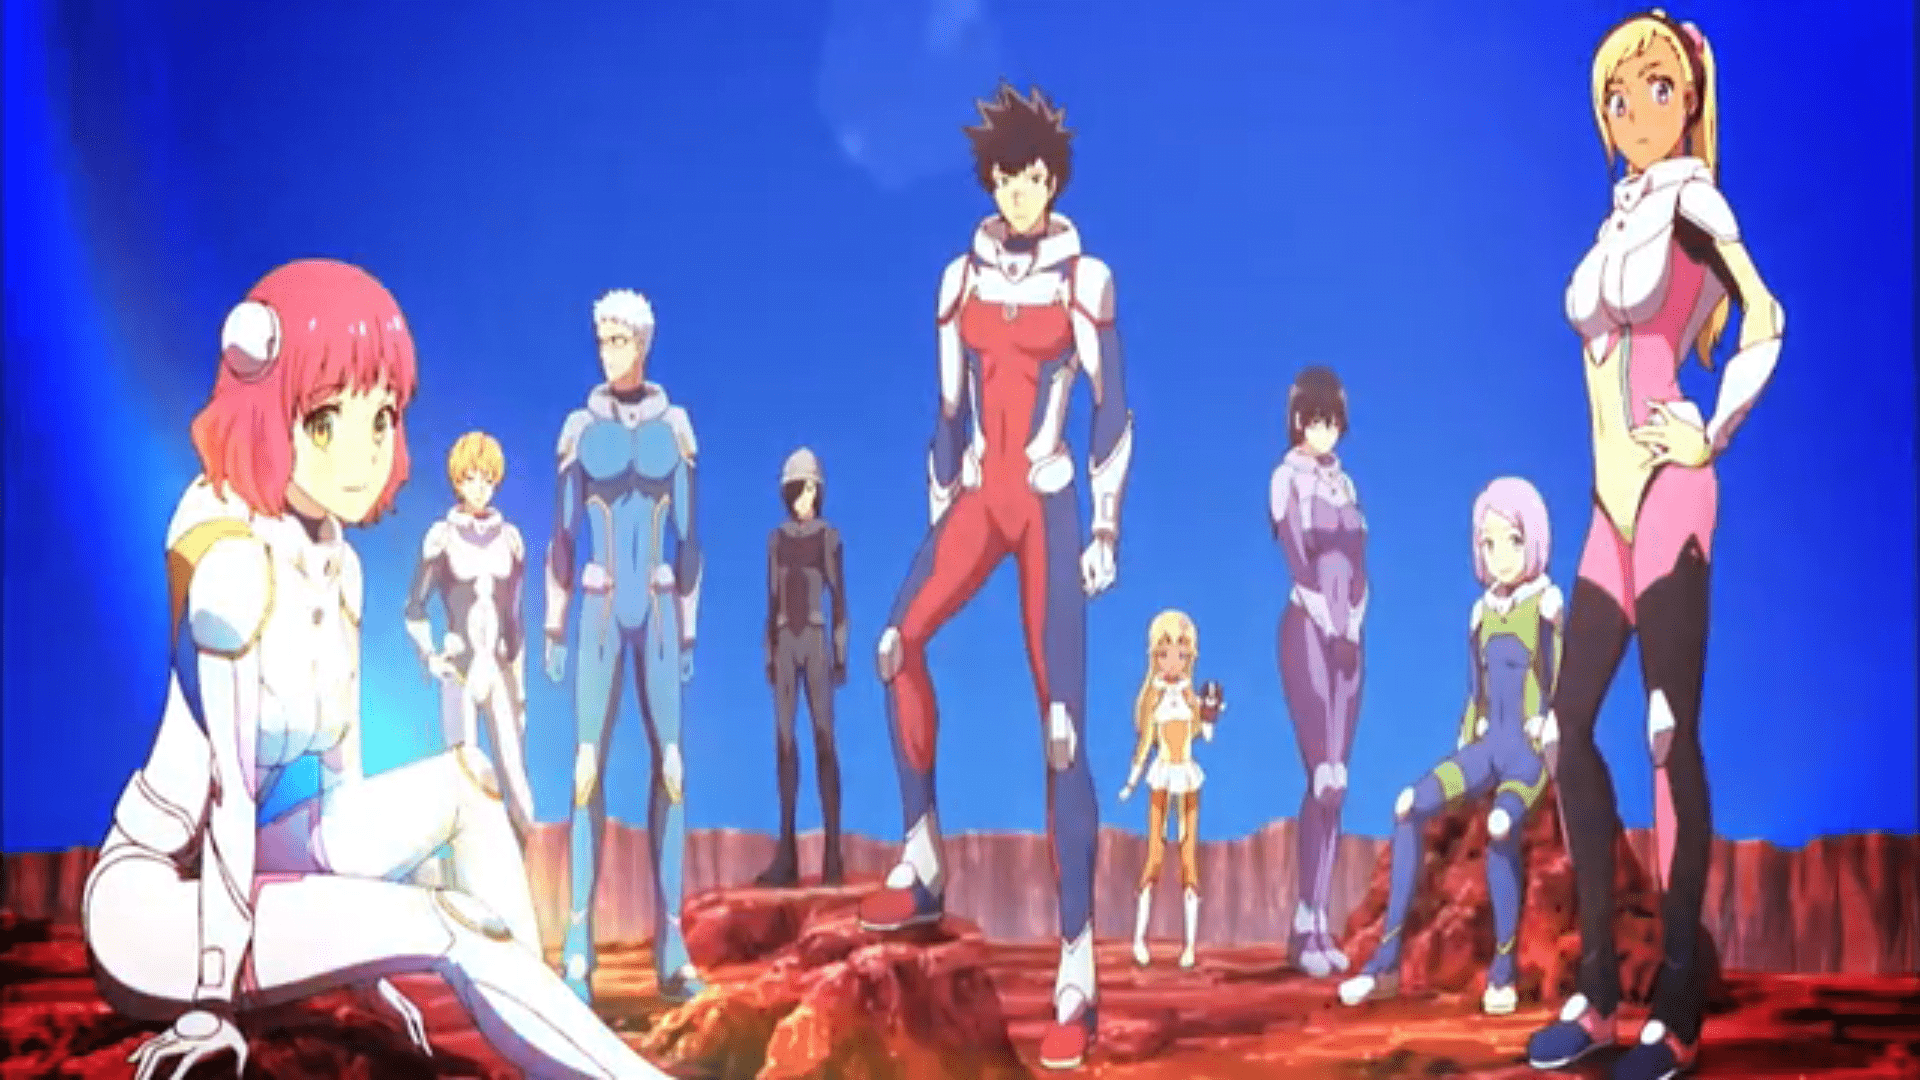 Astra-Lost-In-Space-Anime